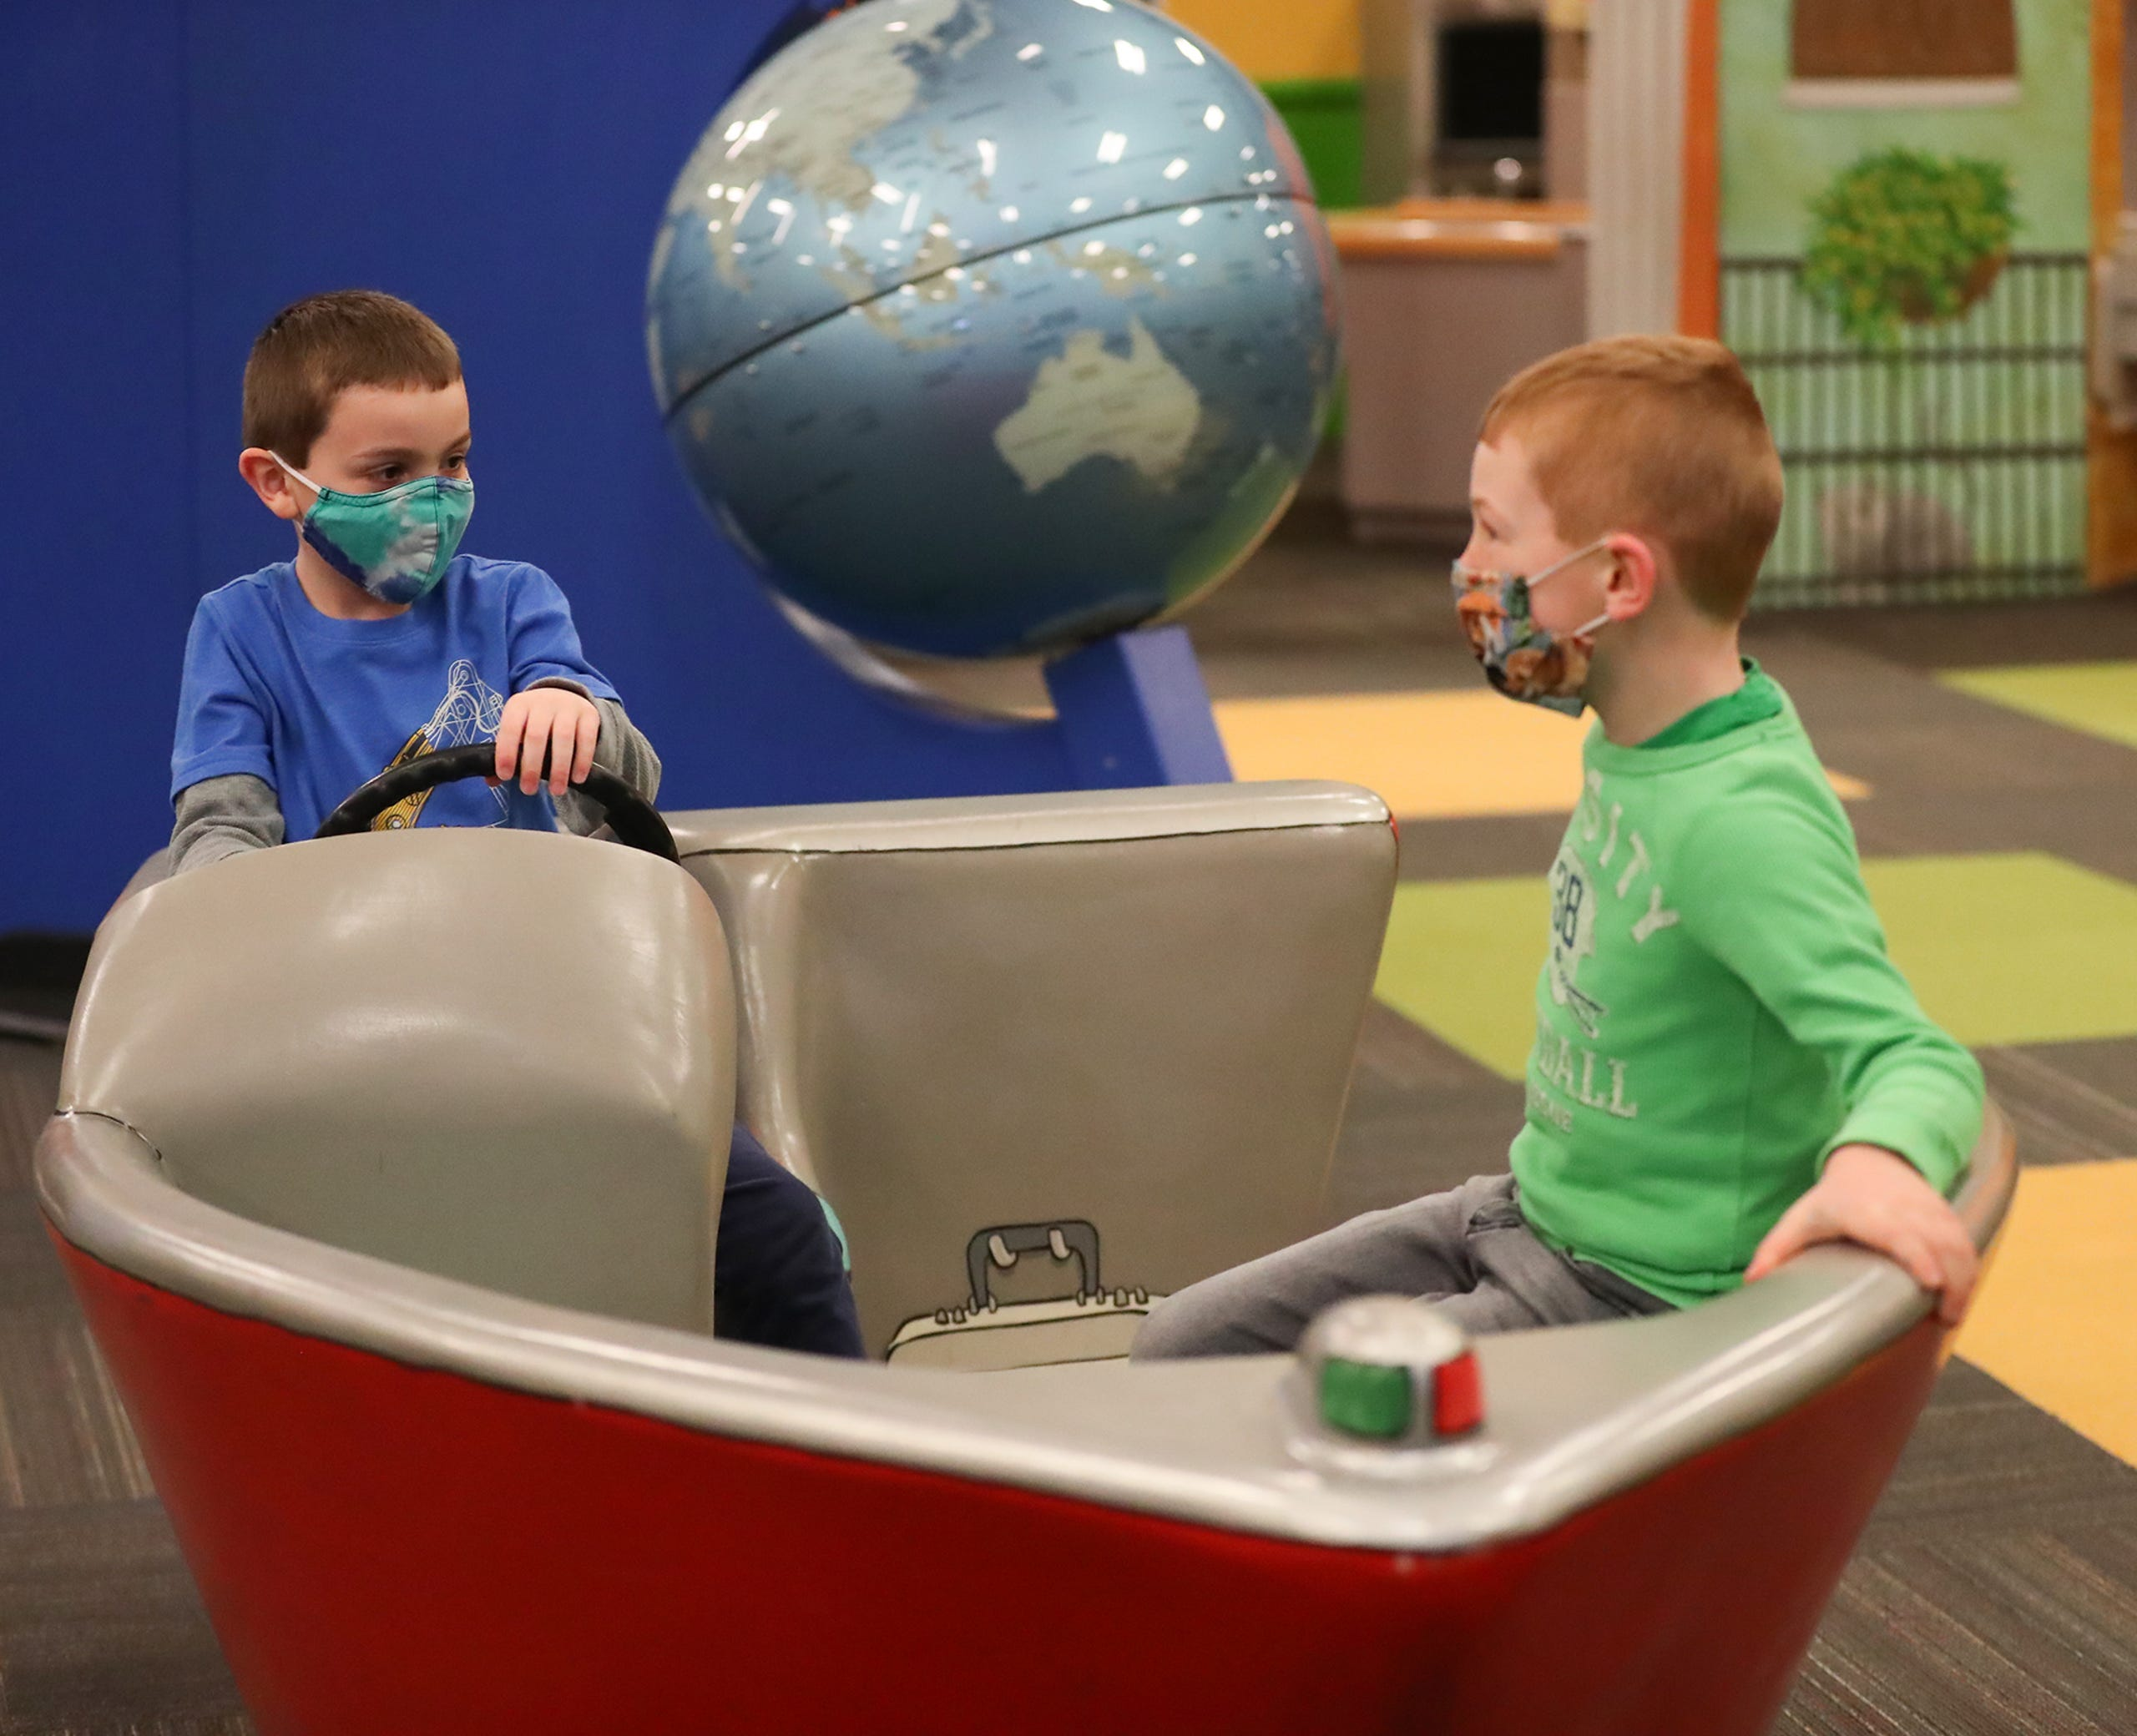 Kids play Saturday, March 13, 2021 at the Fond du Lac Children's Museum in Fond du Lac, Wis. The museum opens today to the public after being closed because of the Covid-19 pandemic. Doug Raflik/USA TODAY NETWORK-Wisconsin